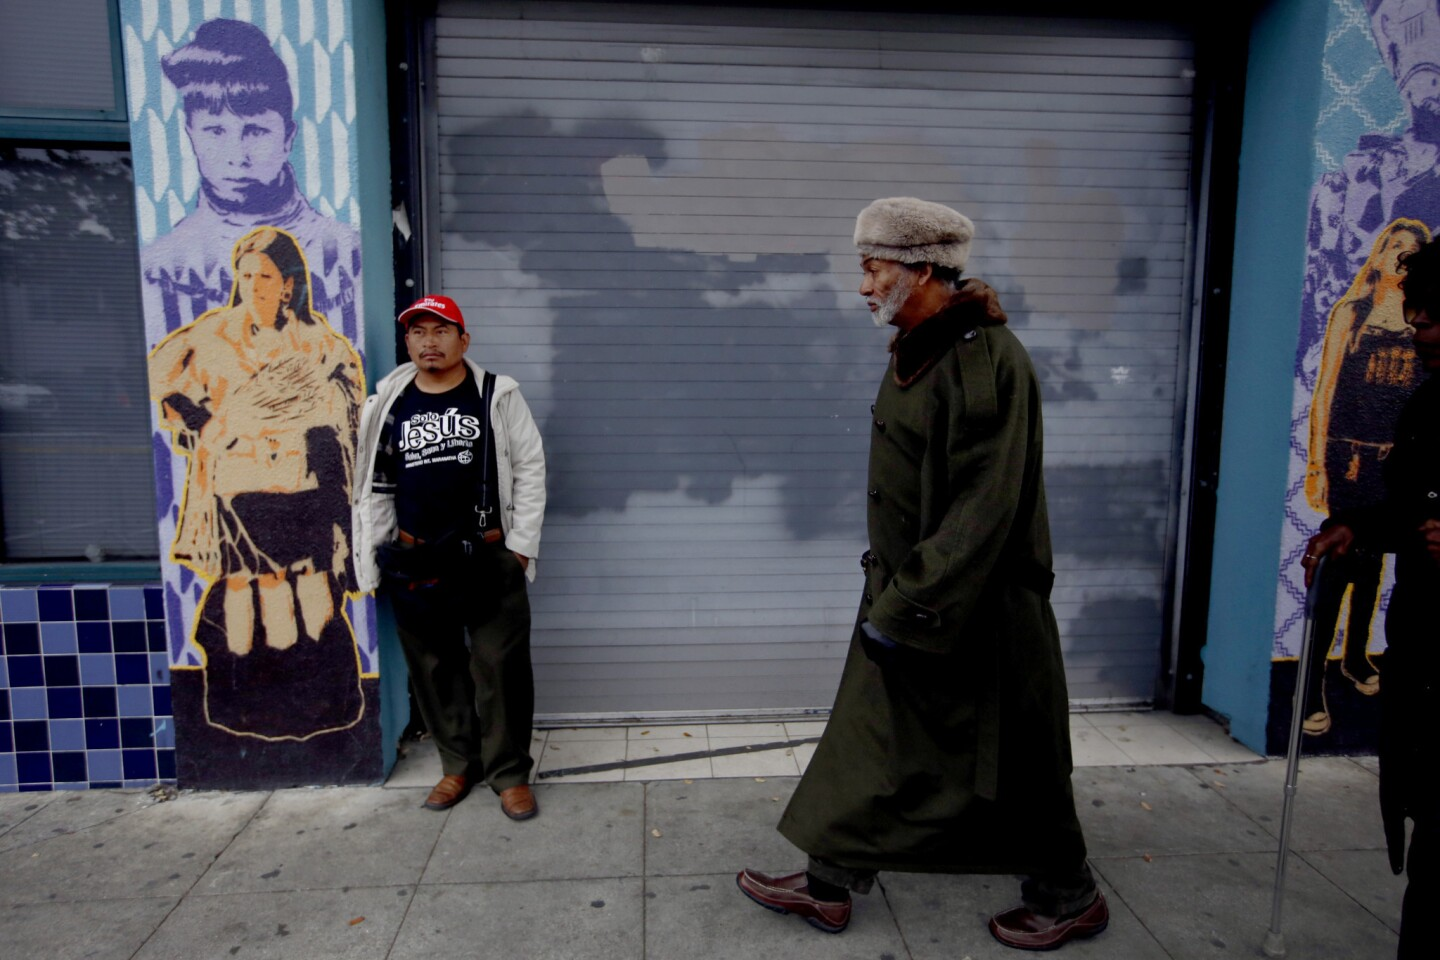 Elias Nolasco, left, 39, of Oakland stands near the site of the warehouse fire as poet Alfred Hayes, right, 69, of Oakland, walks to his dentist appointment in Oakland on Wedneday. Residents described Fruitvale, situated in the flats south of downtown between two freeways, as a largely Latino district of working-class families and small shops.